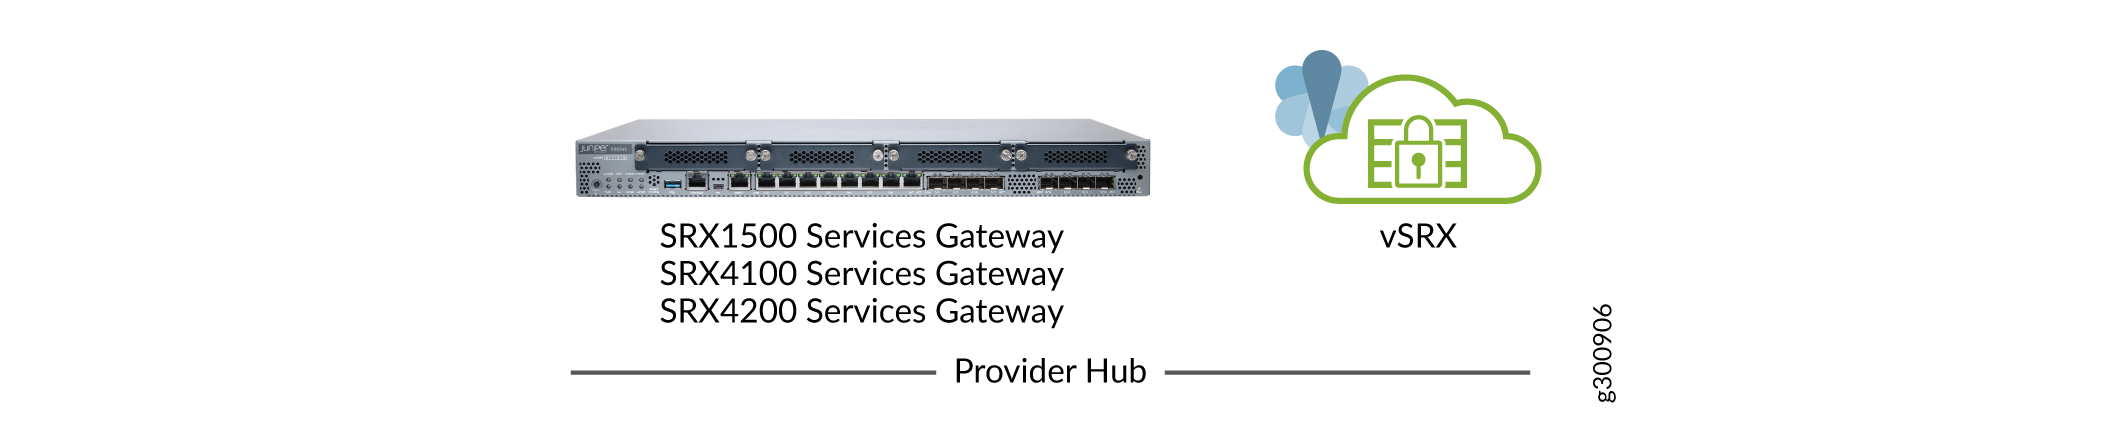 SD-WAN Provider Hub Devices